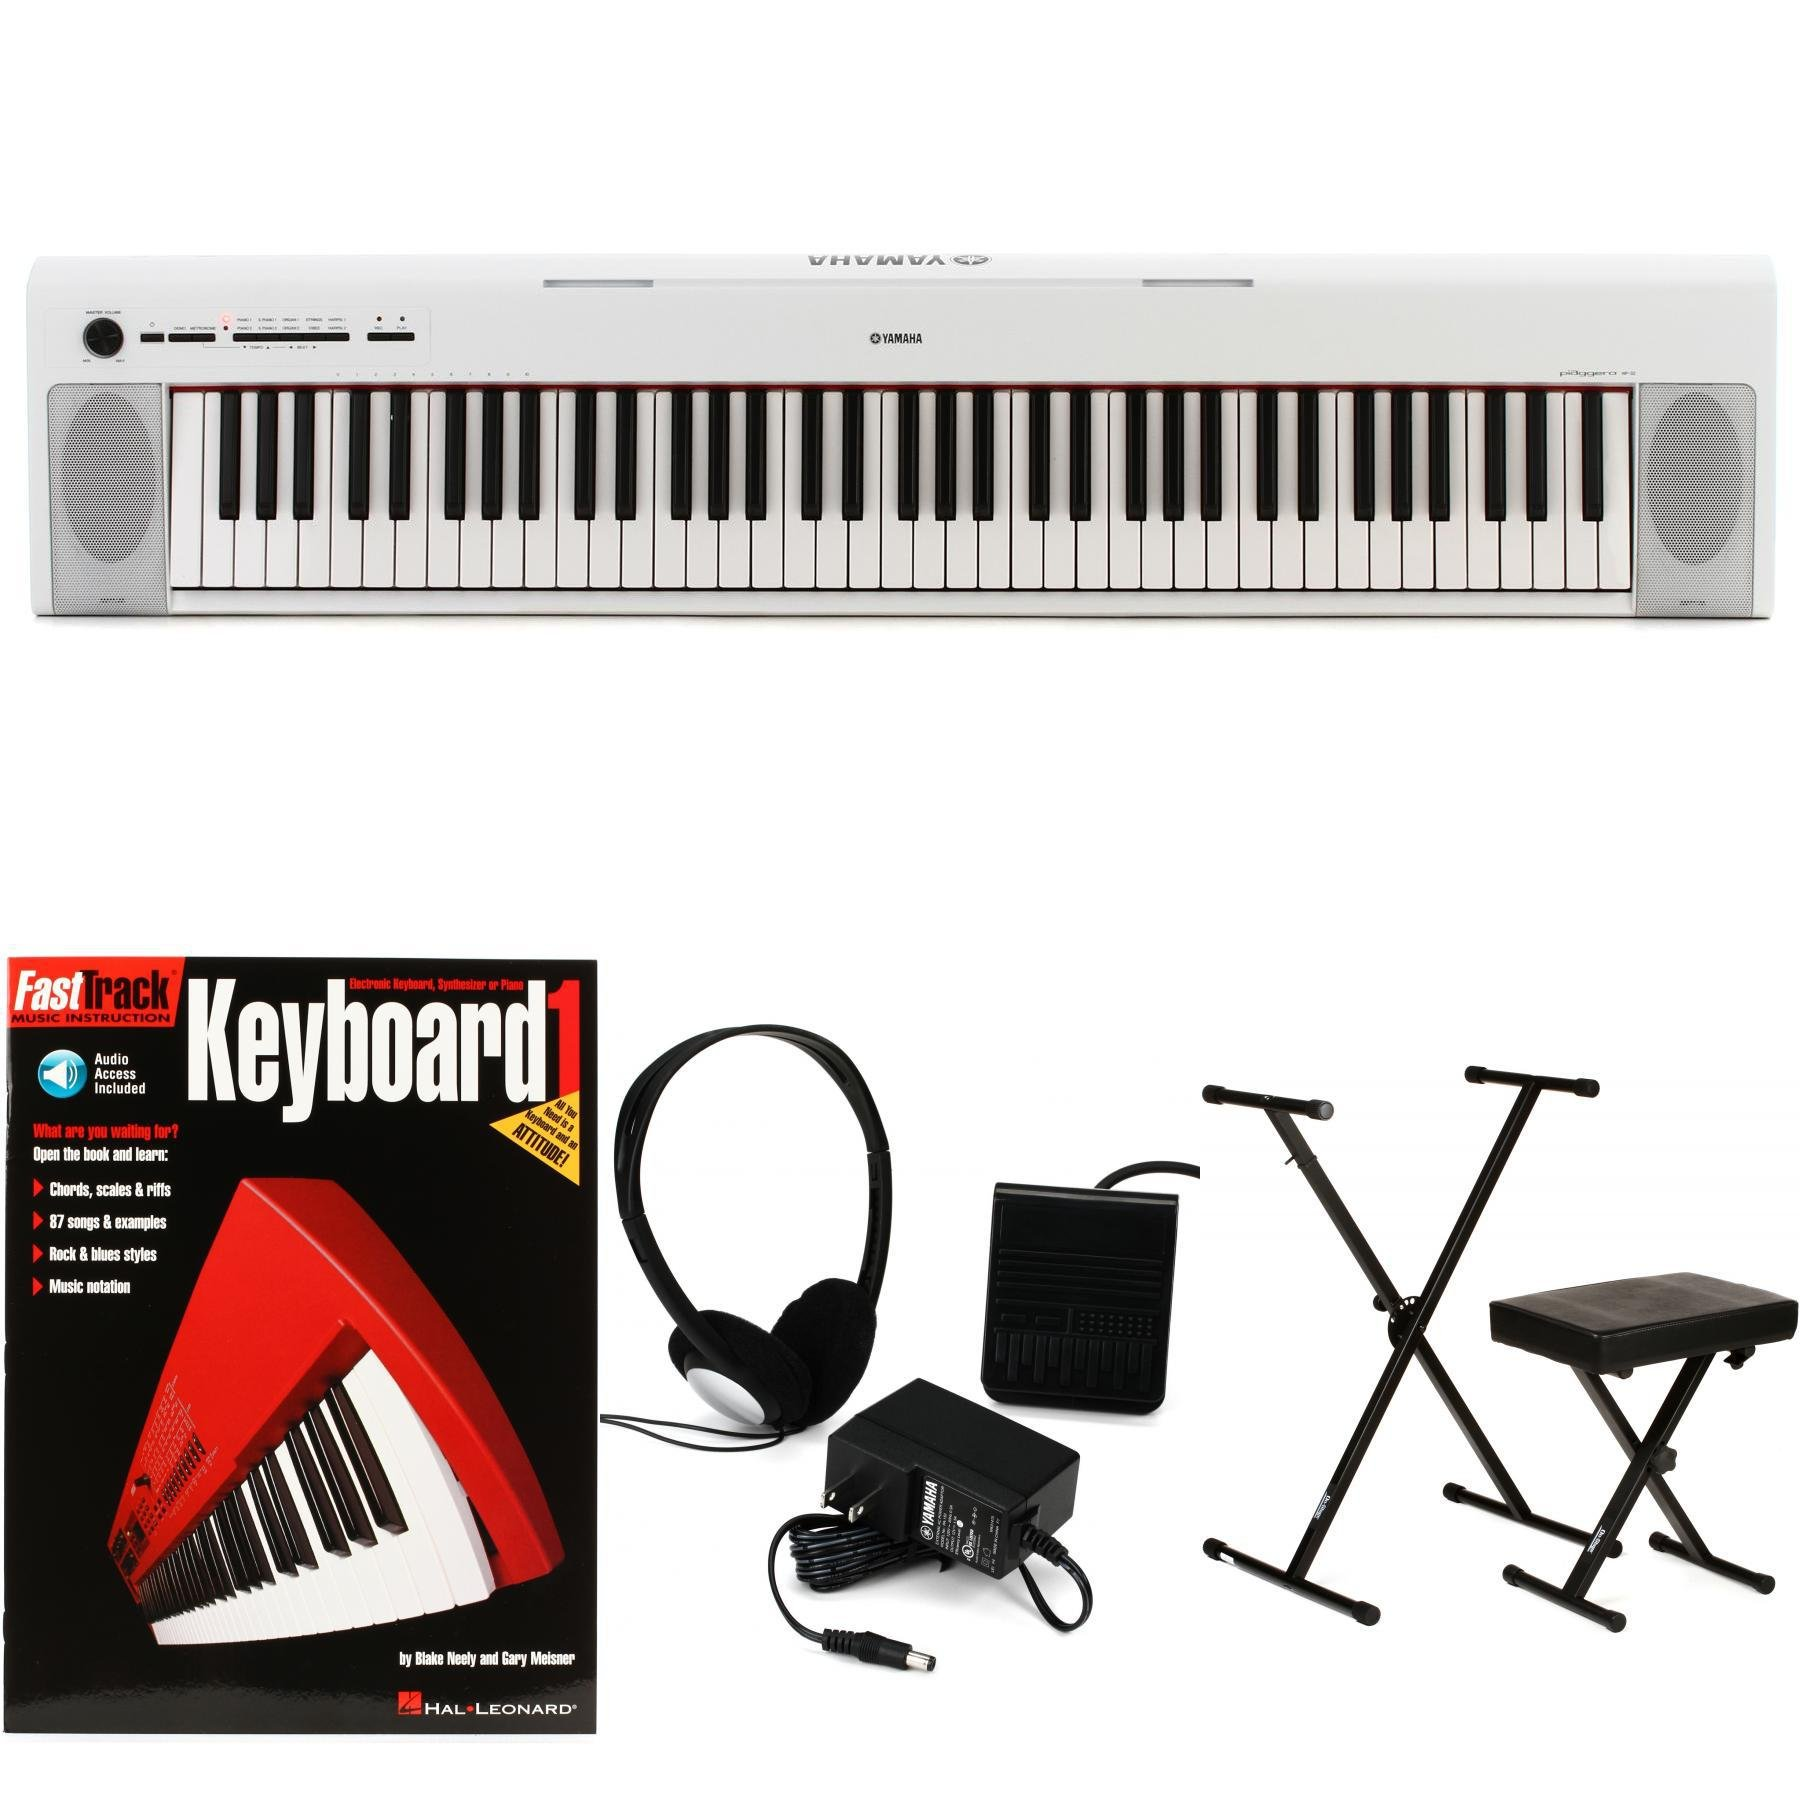 Yamaha Piaggero NP-32 Essential Keyboard Bundle - White | Sweetwater